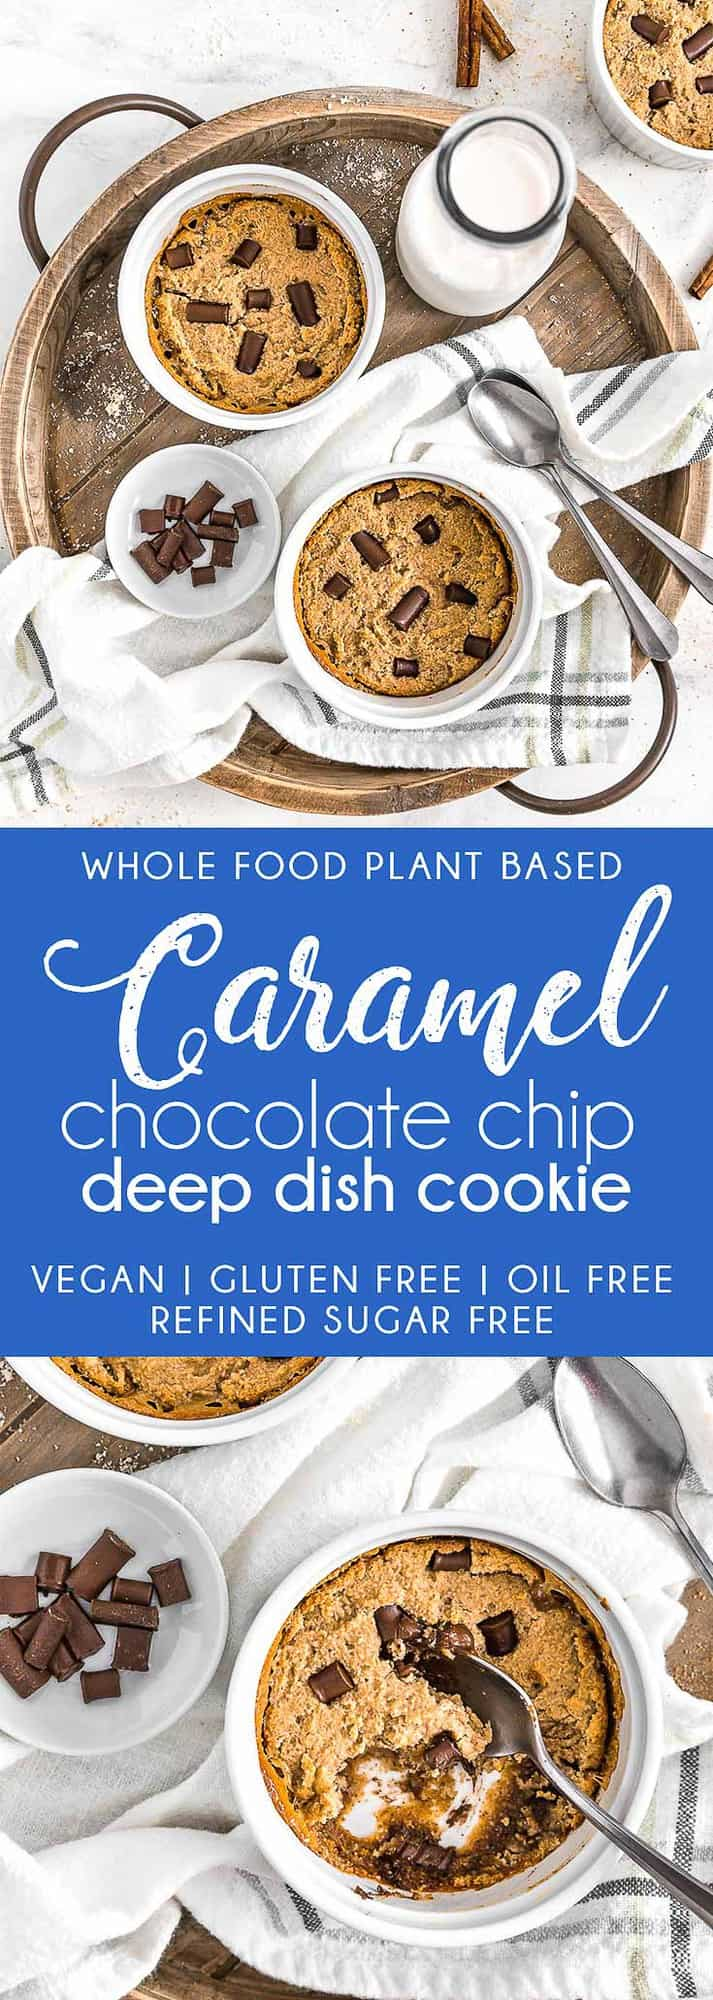 Caramel Chocolate Deep Dish Cookie, vegan cookie, vegan chocolate, vegan dessert, plant based, vegan, vegetarian, whole food plant based, gluten free, recipe, wfpb, healthy, healthy vegan, oil free, no refined sugar, no oil, refined sugar free, dairy free, chocolate, chocolate chips, deep dish cookie, skillet cookie, vegan skillet cookie, treats, sweets, desserts, caramel, vegan caramel